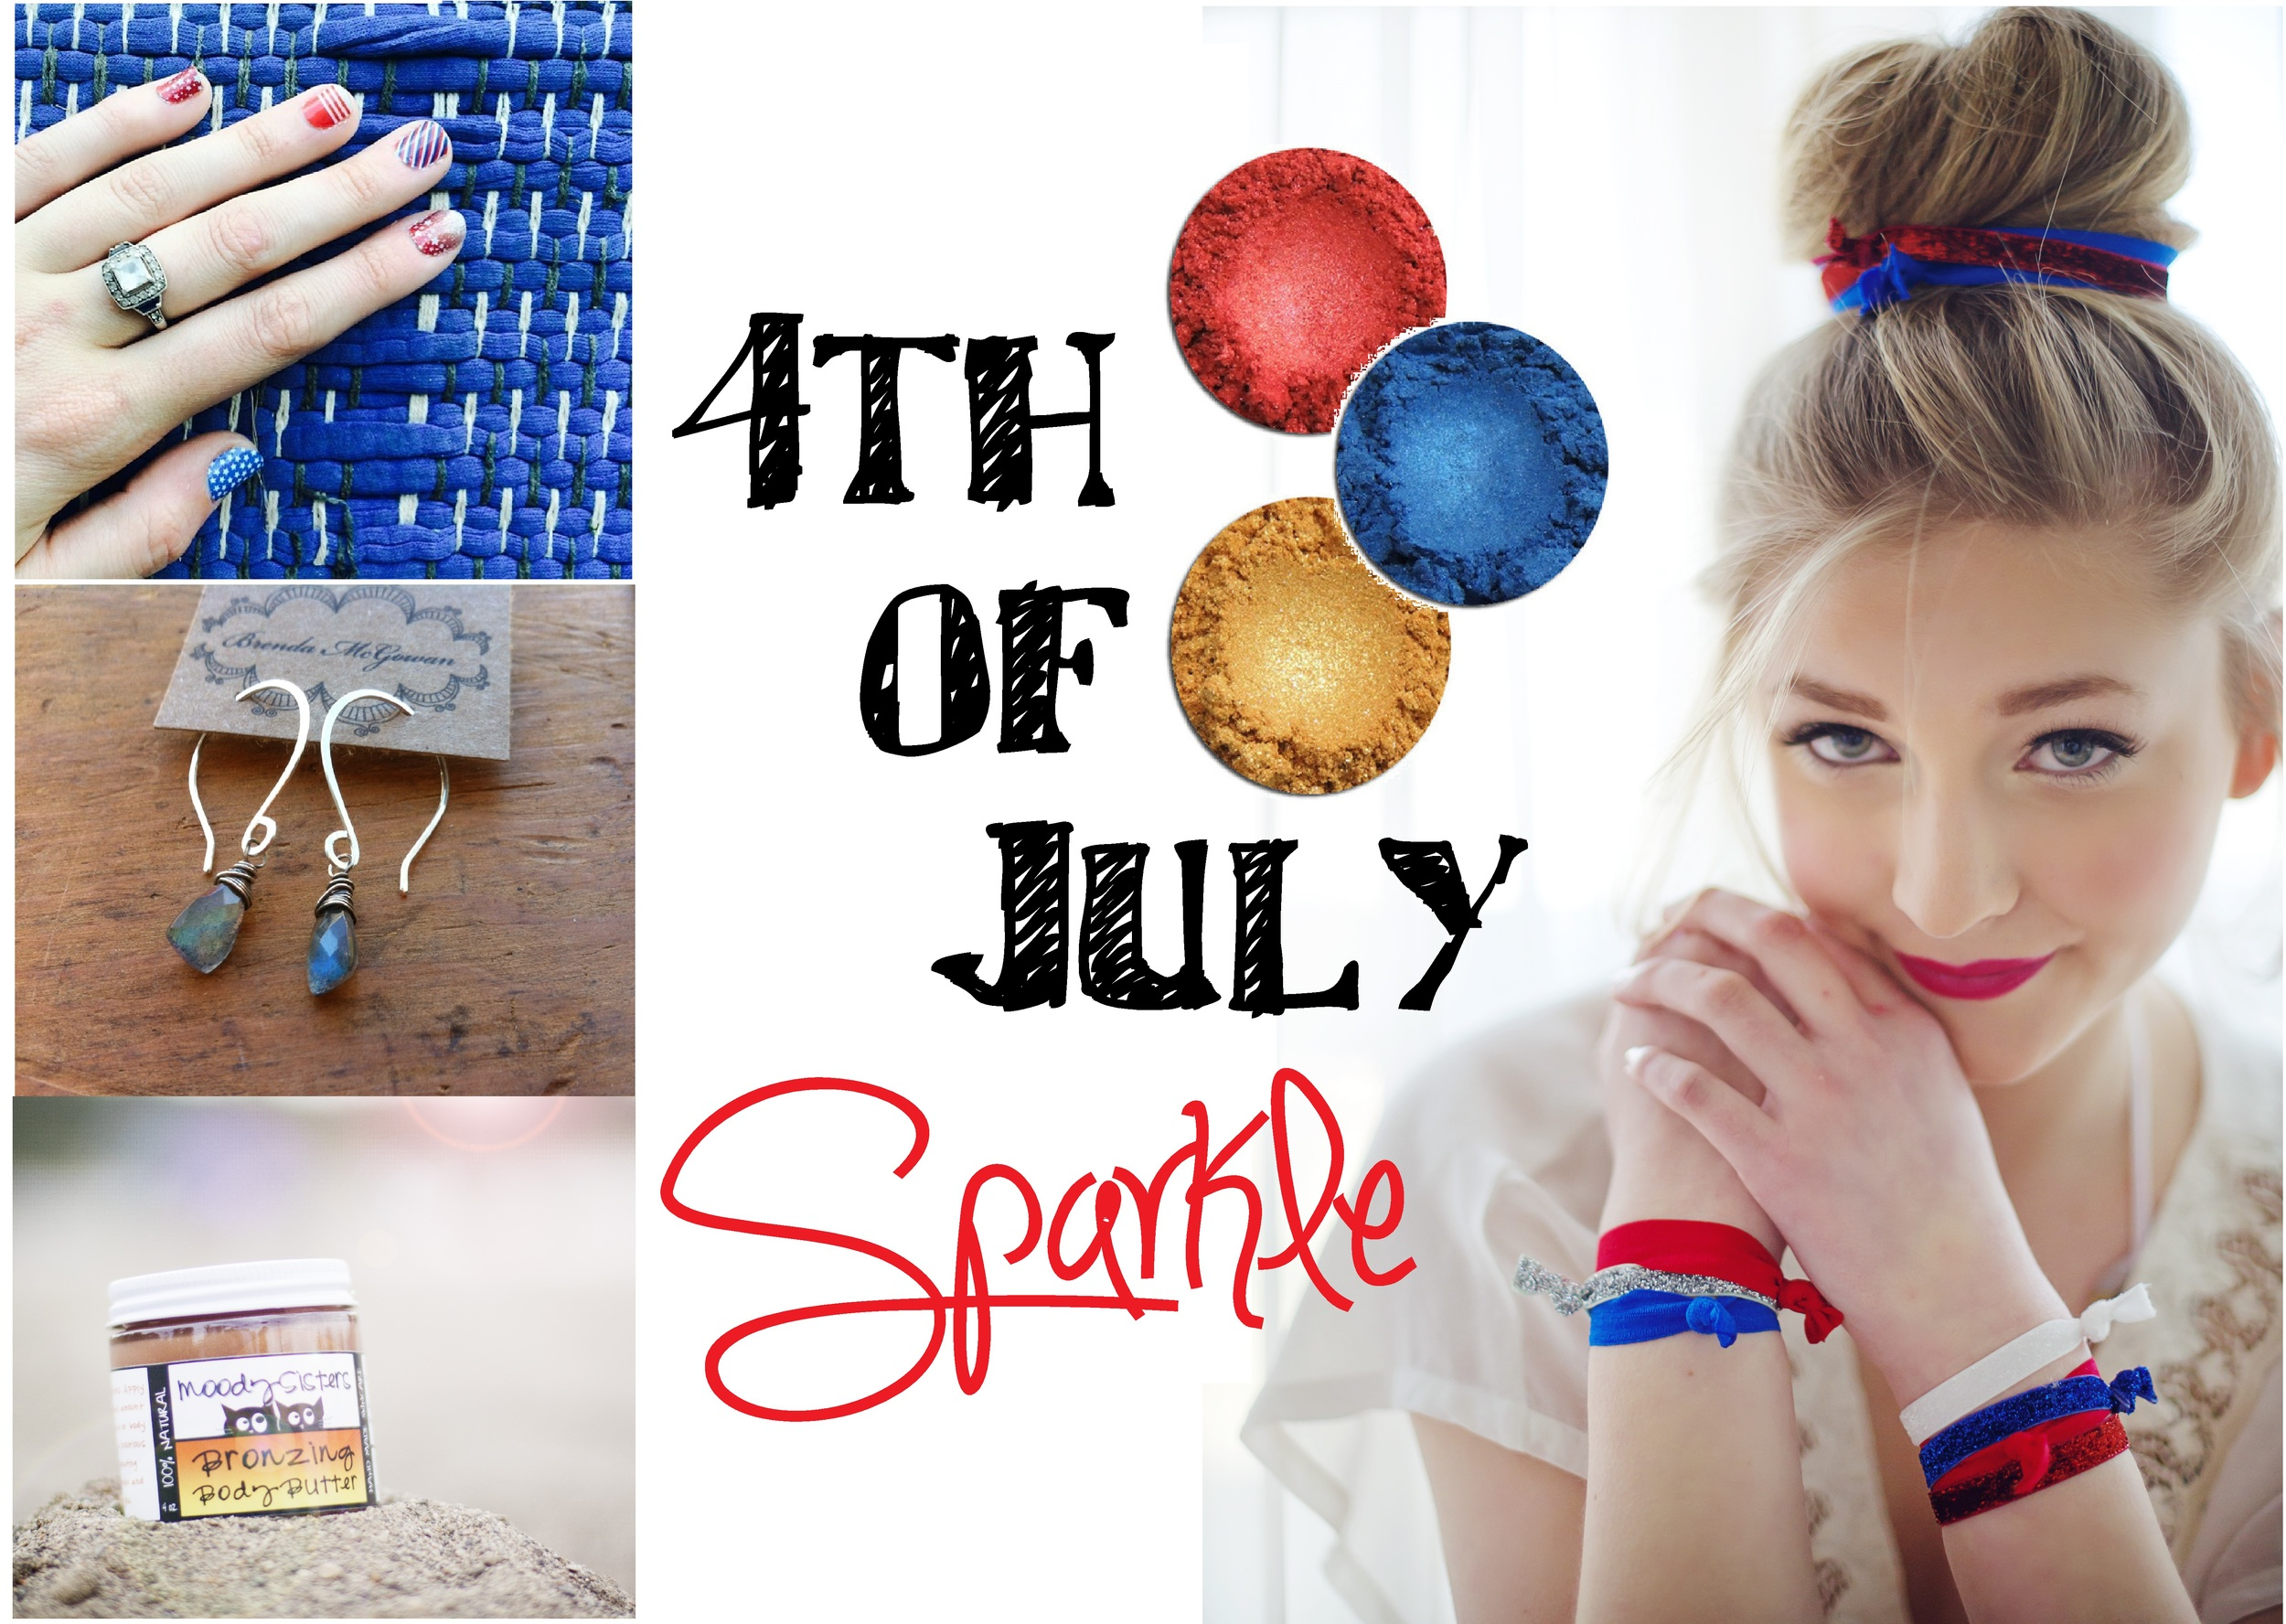 4th of july sparkle beauty guide